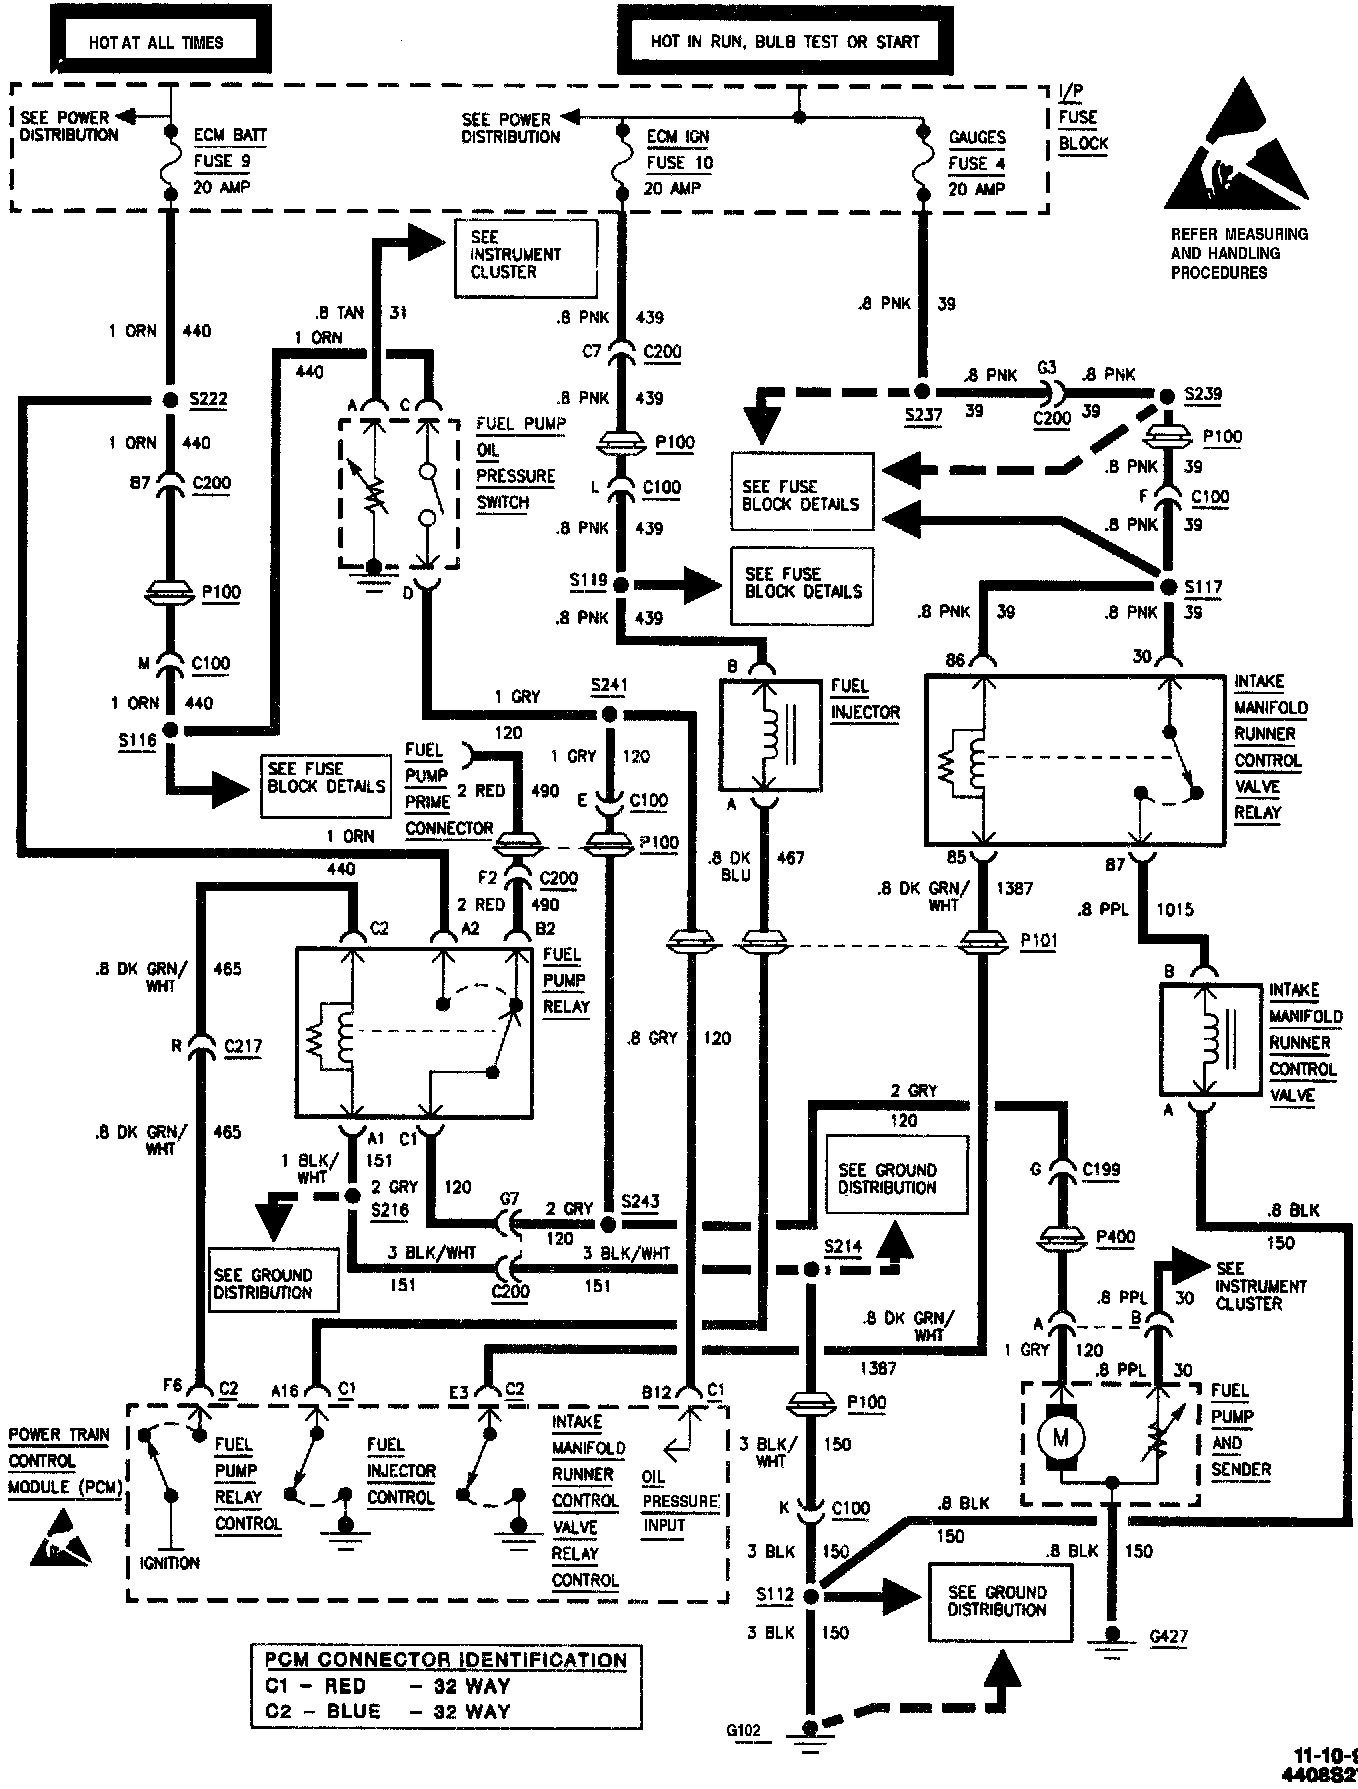 [SCHEMATICS_4NL]  BH_1830] Isuzu Radio Wiring Diagrams Download Diagram | Wiring Diagram For 98 Isuzu Trooper |  | Astic Tzici Atolo Acion Synk Xero Ariot Crove Heeve Mohammedshrine Librar  Wiring 101